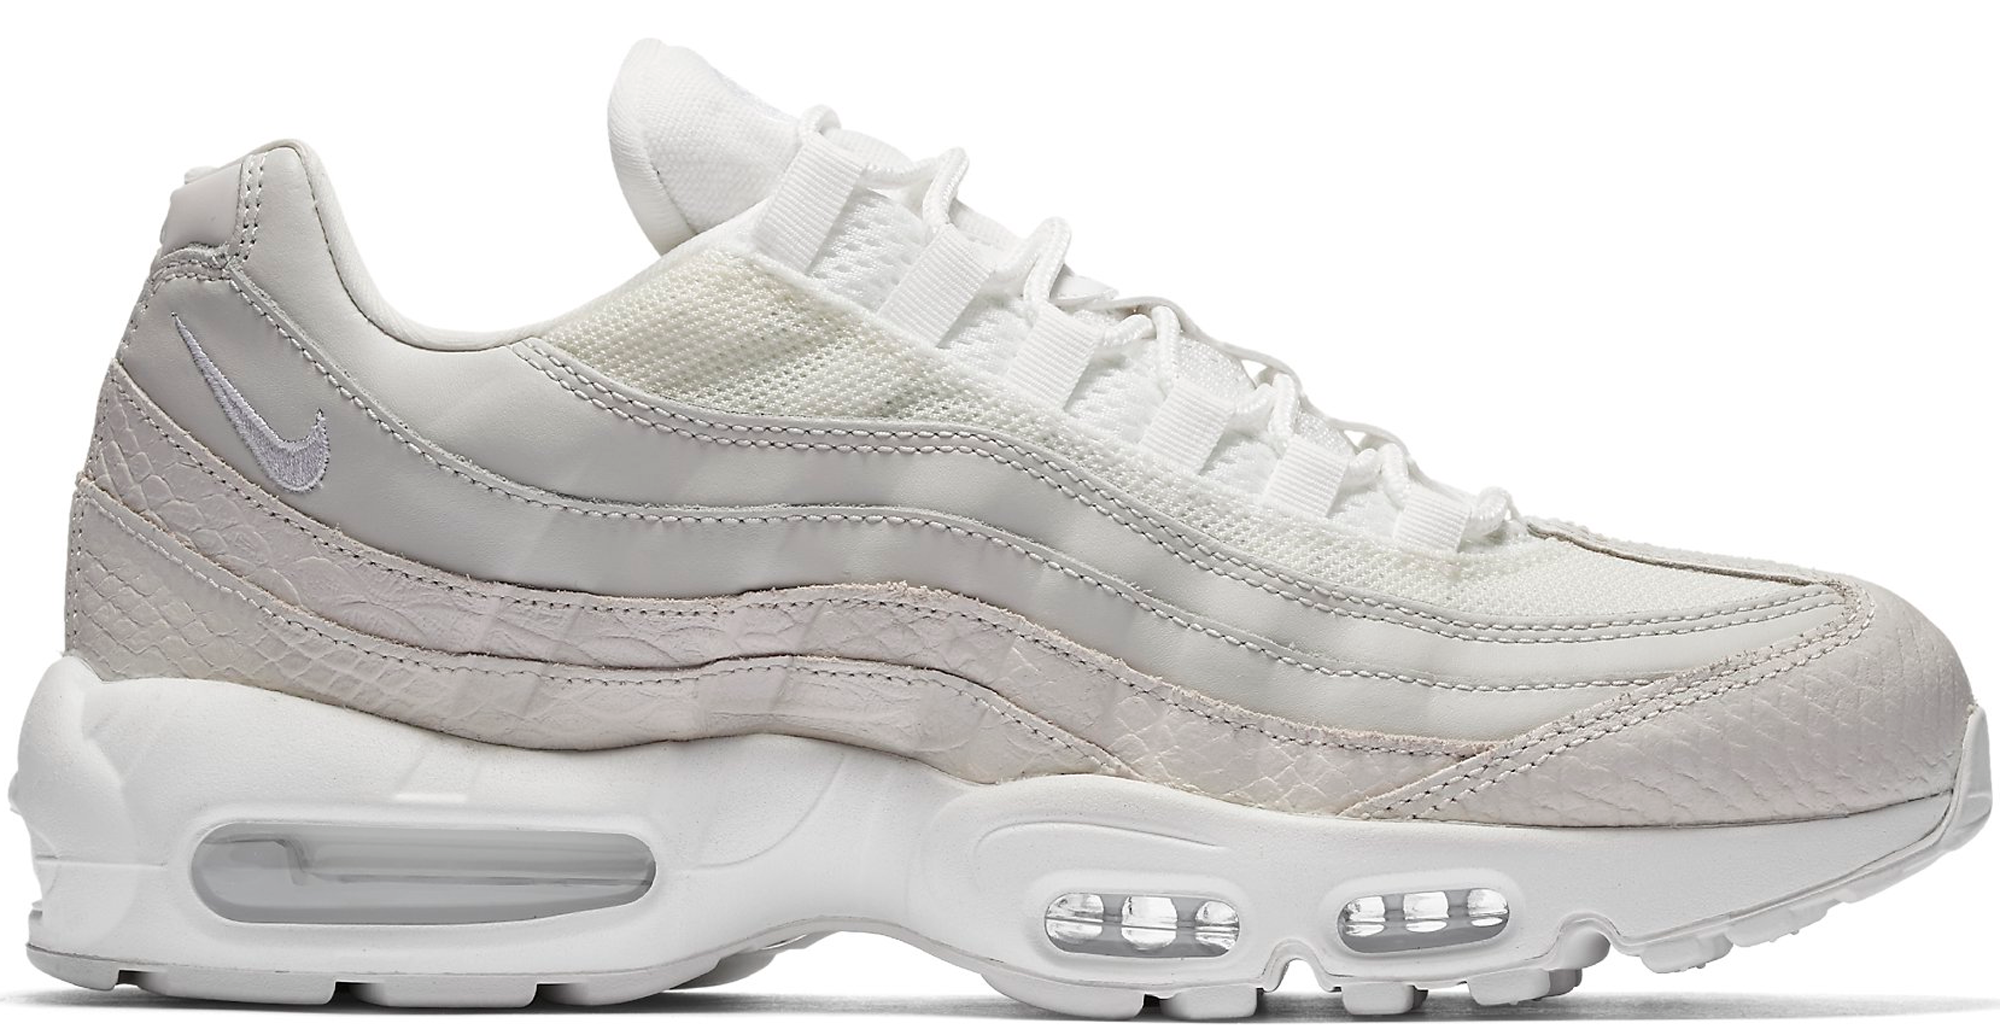 nike air max 95 summit white. Black Bedroom Furniture Sets. Home Design Ideas